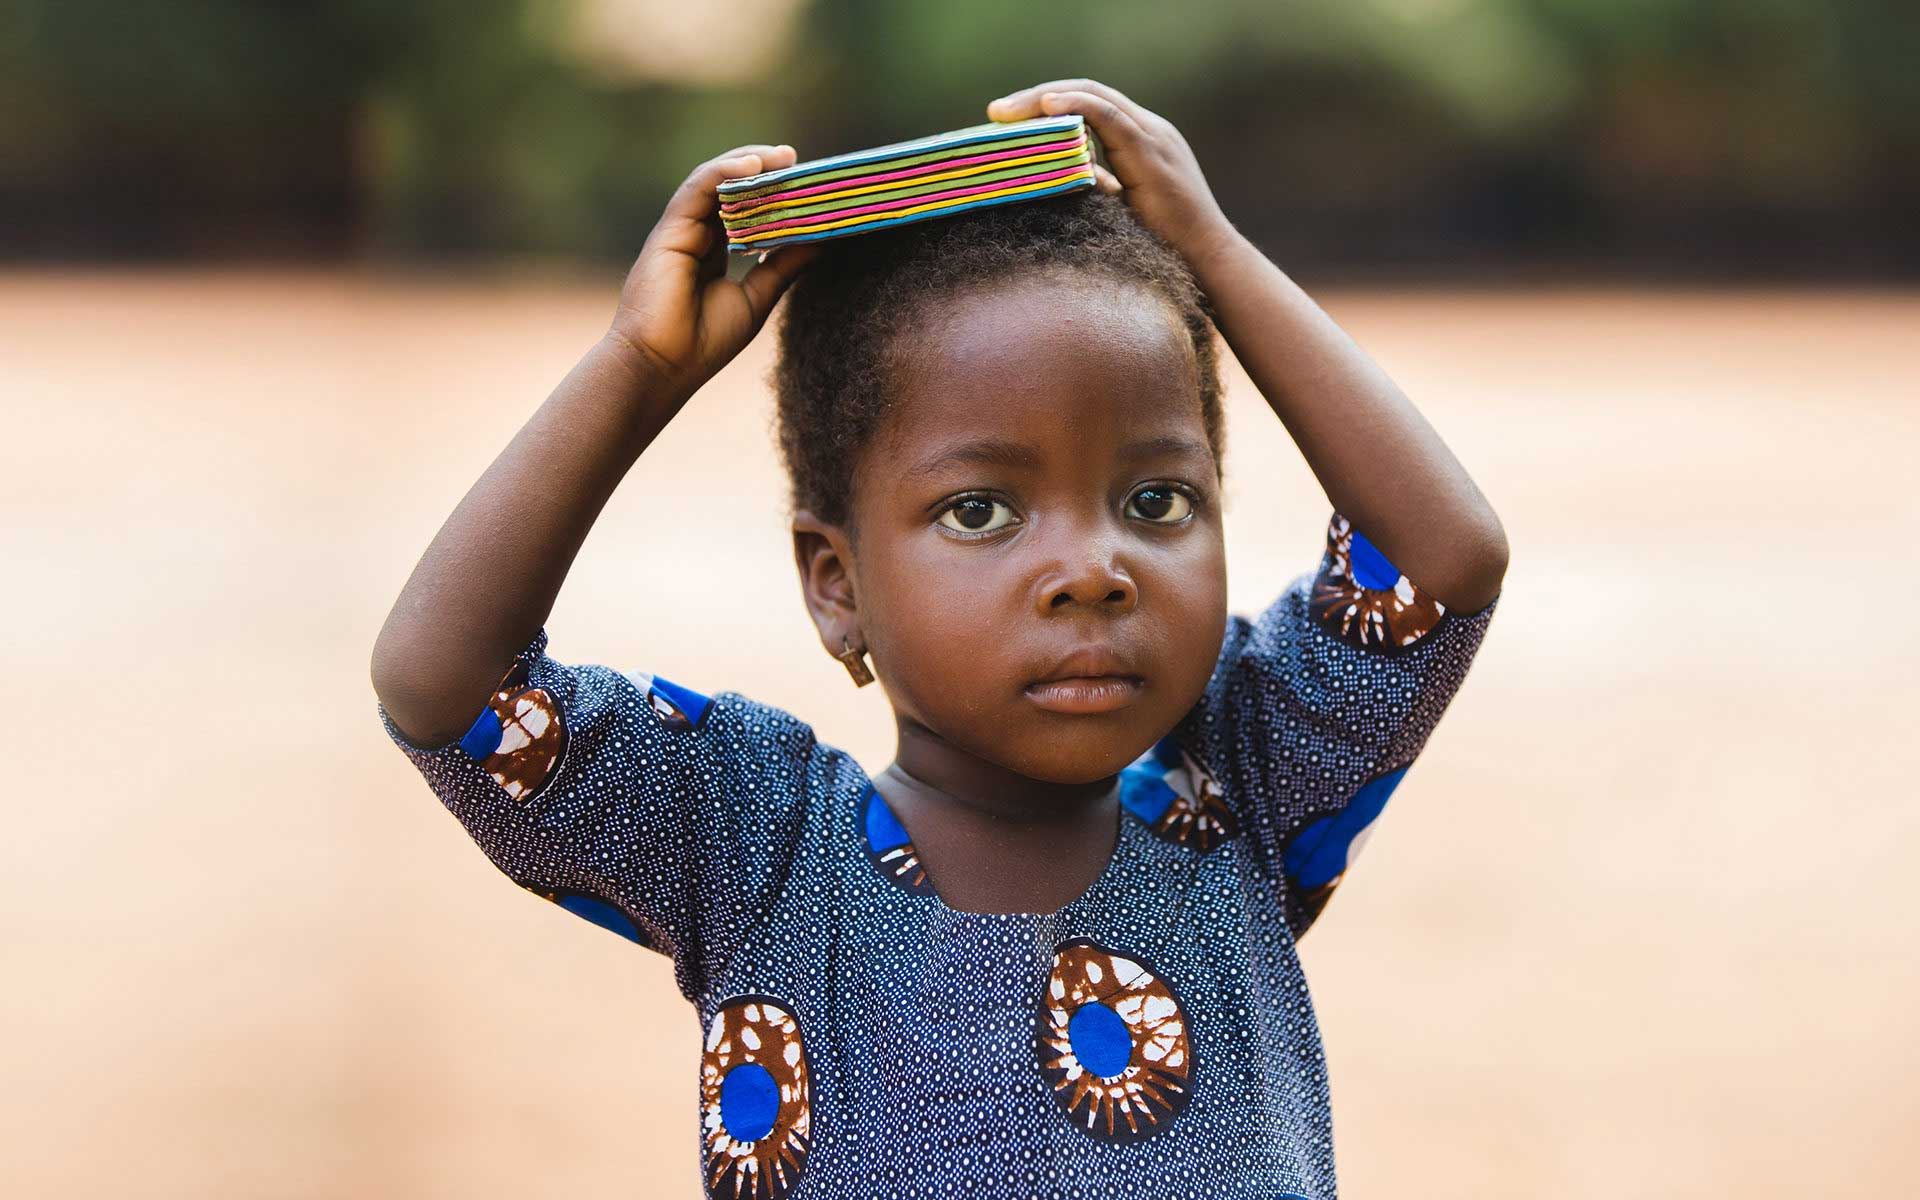 A toddler in Togo holding a book on his head